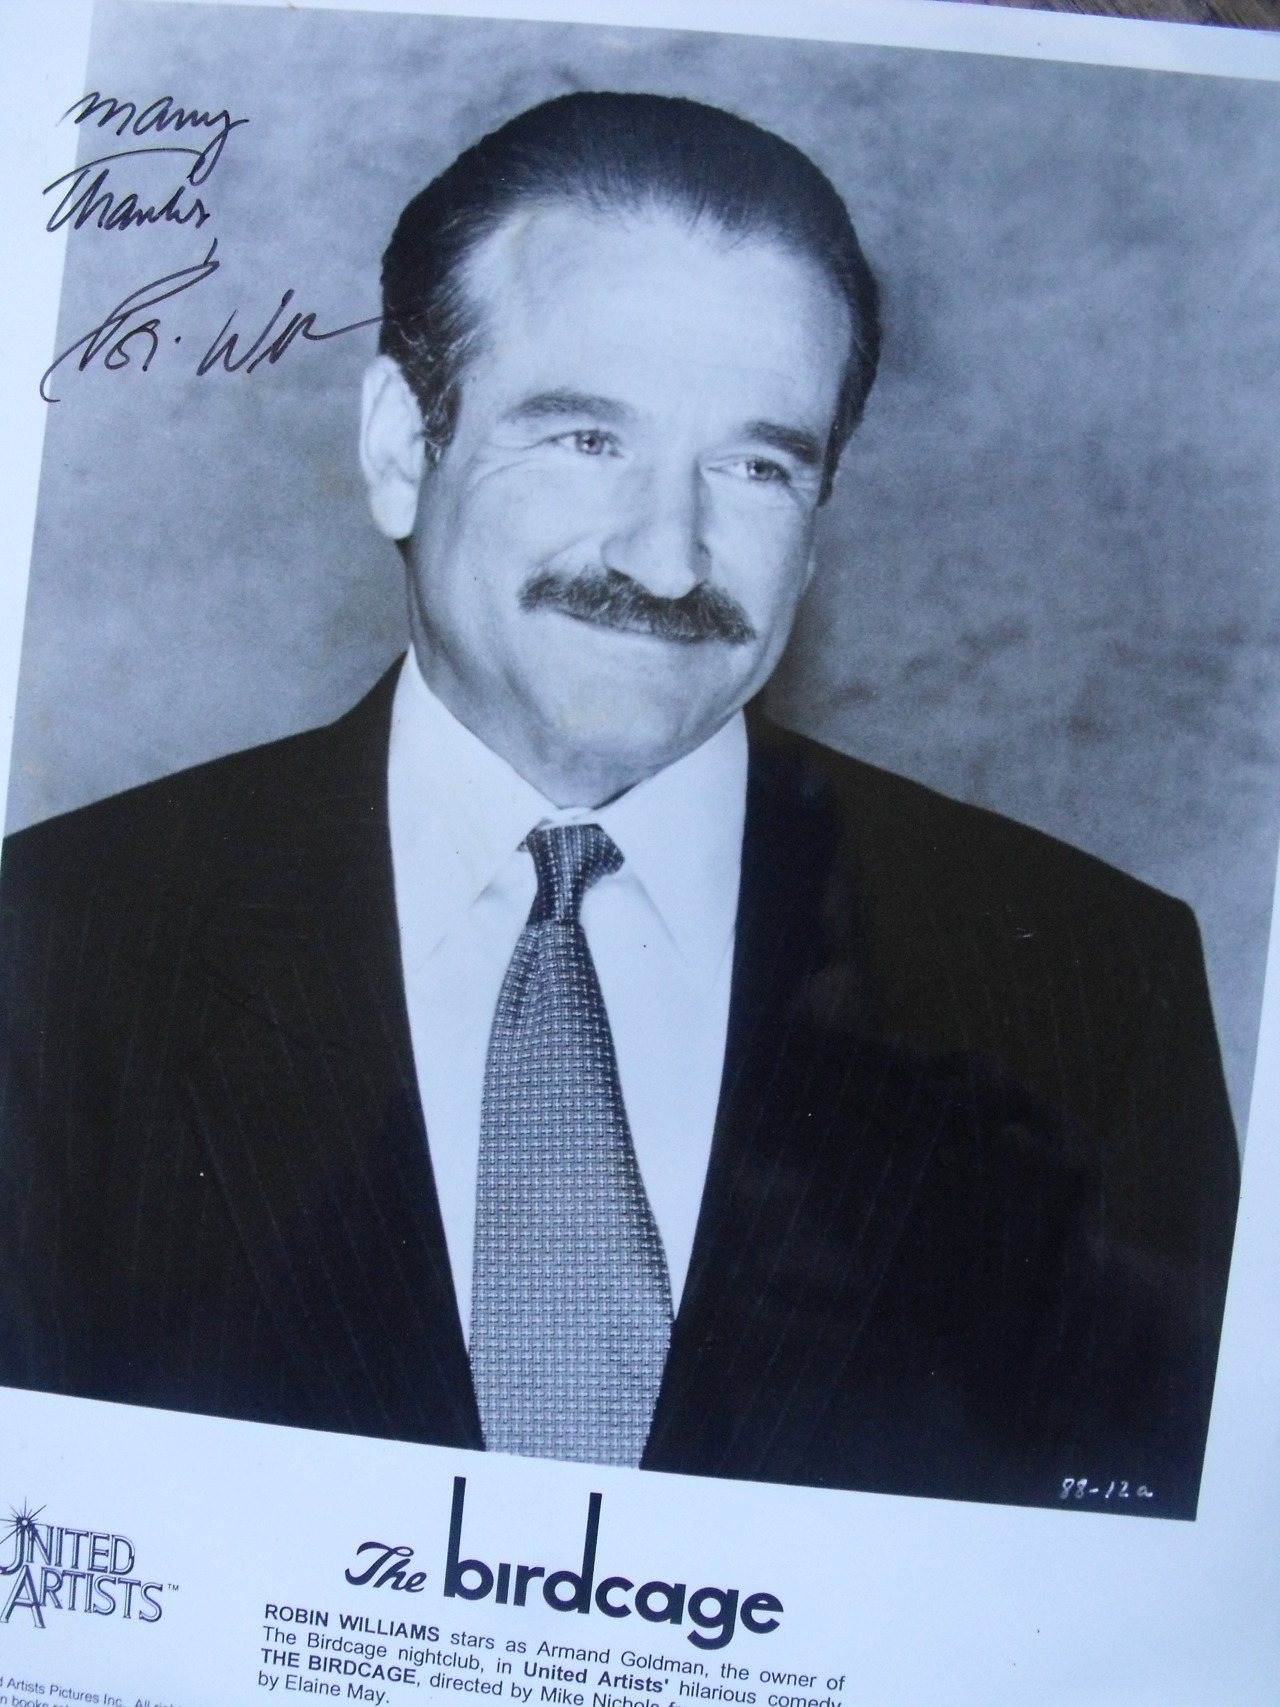 Robin William -My mom's get autograph. This is so old- Authentic.